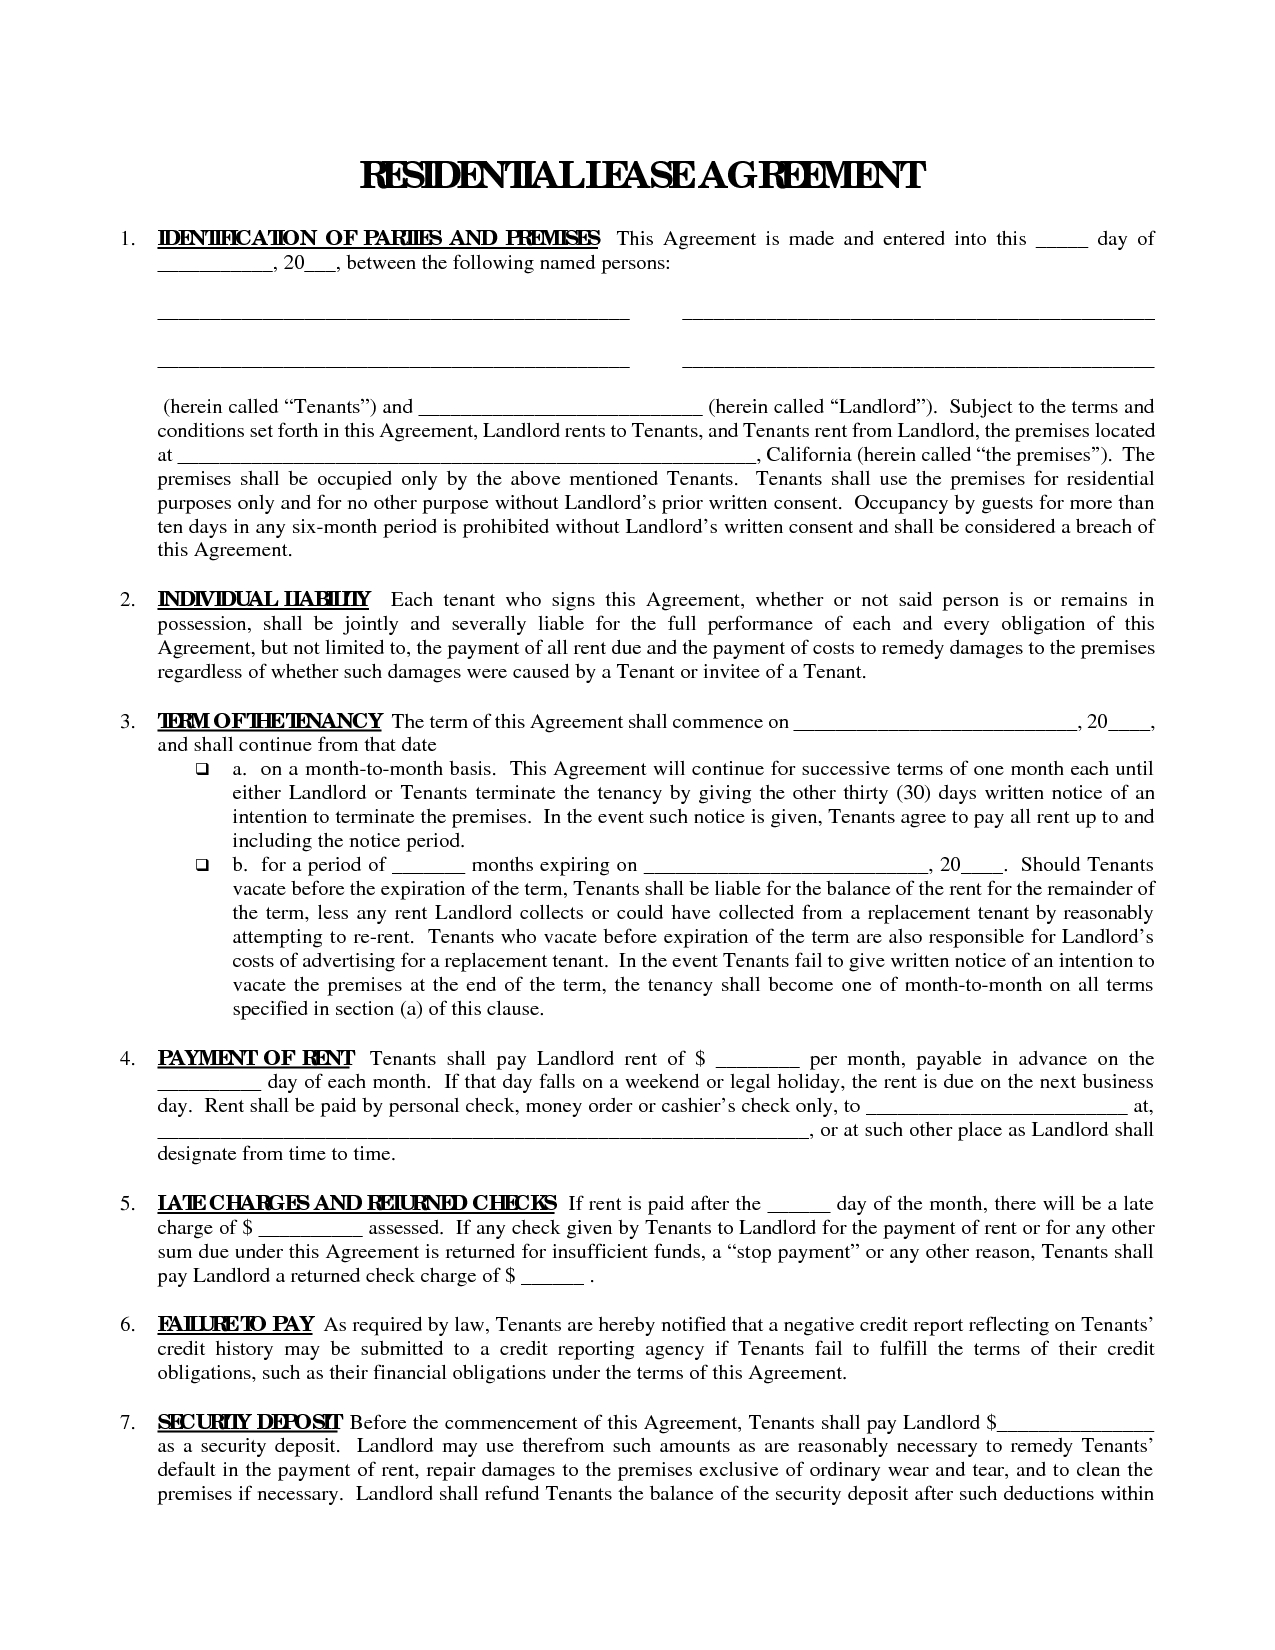 Printable Residential Free House Lease Agreement | Residential Lease - Blank Lease Agreement Free Printable